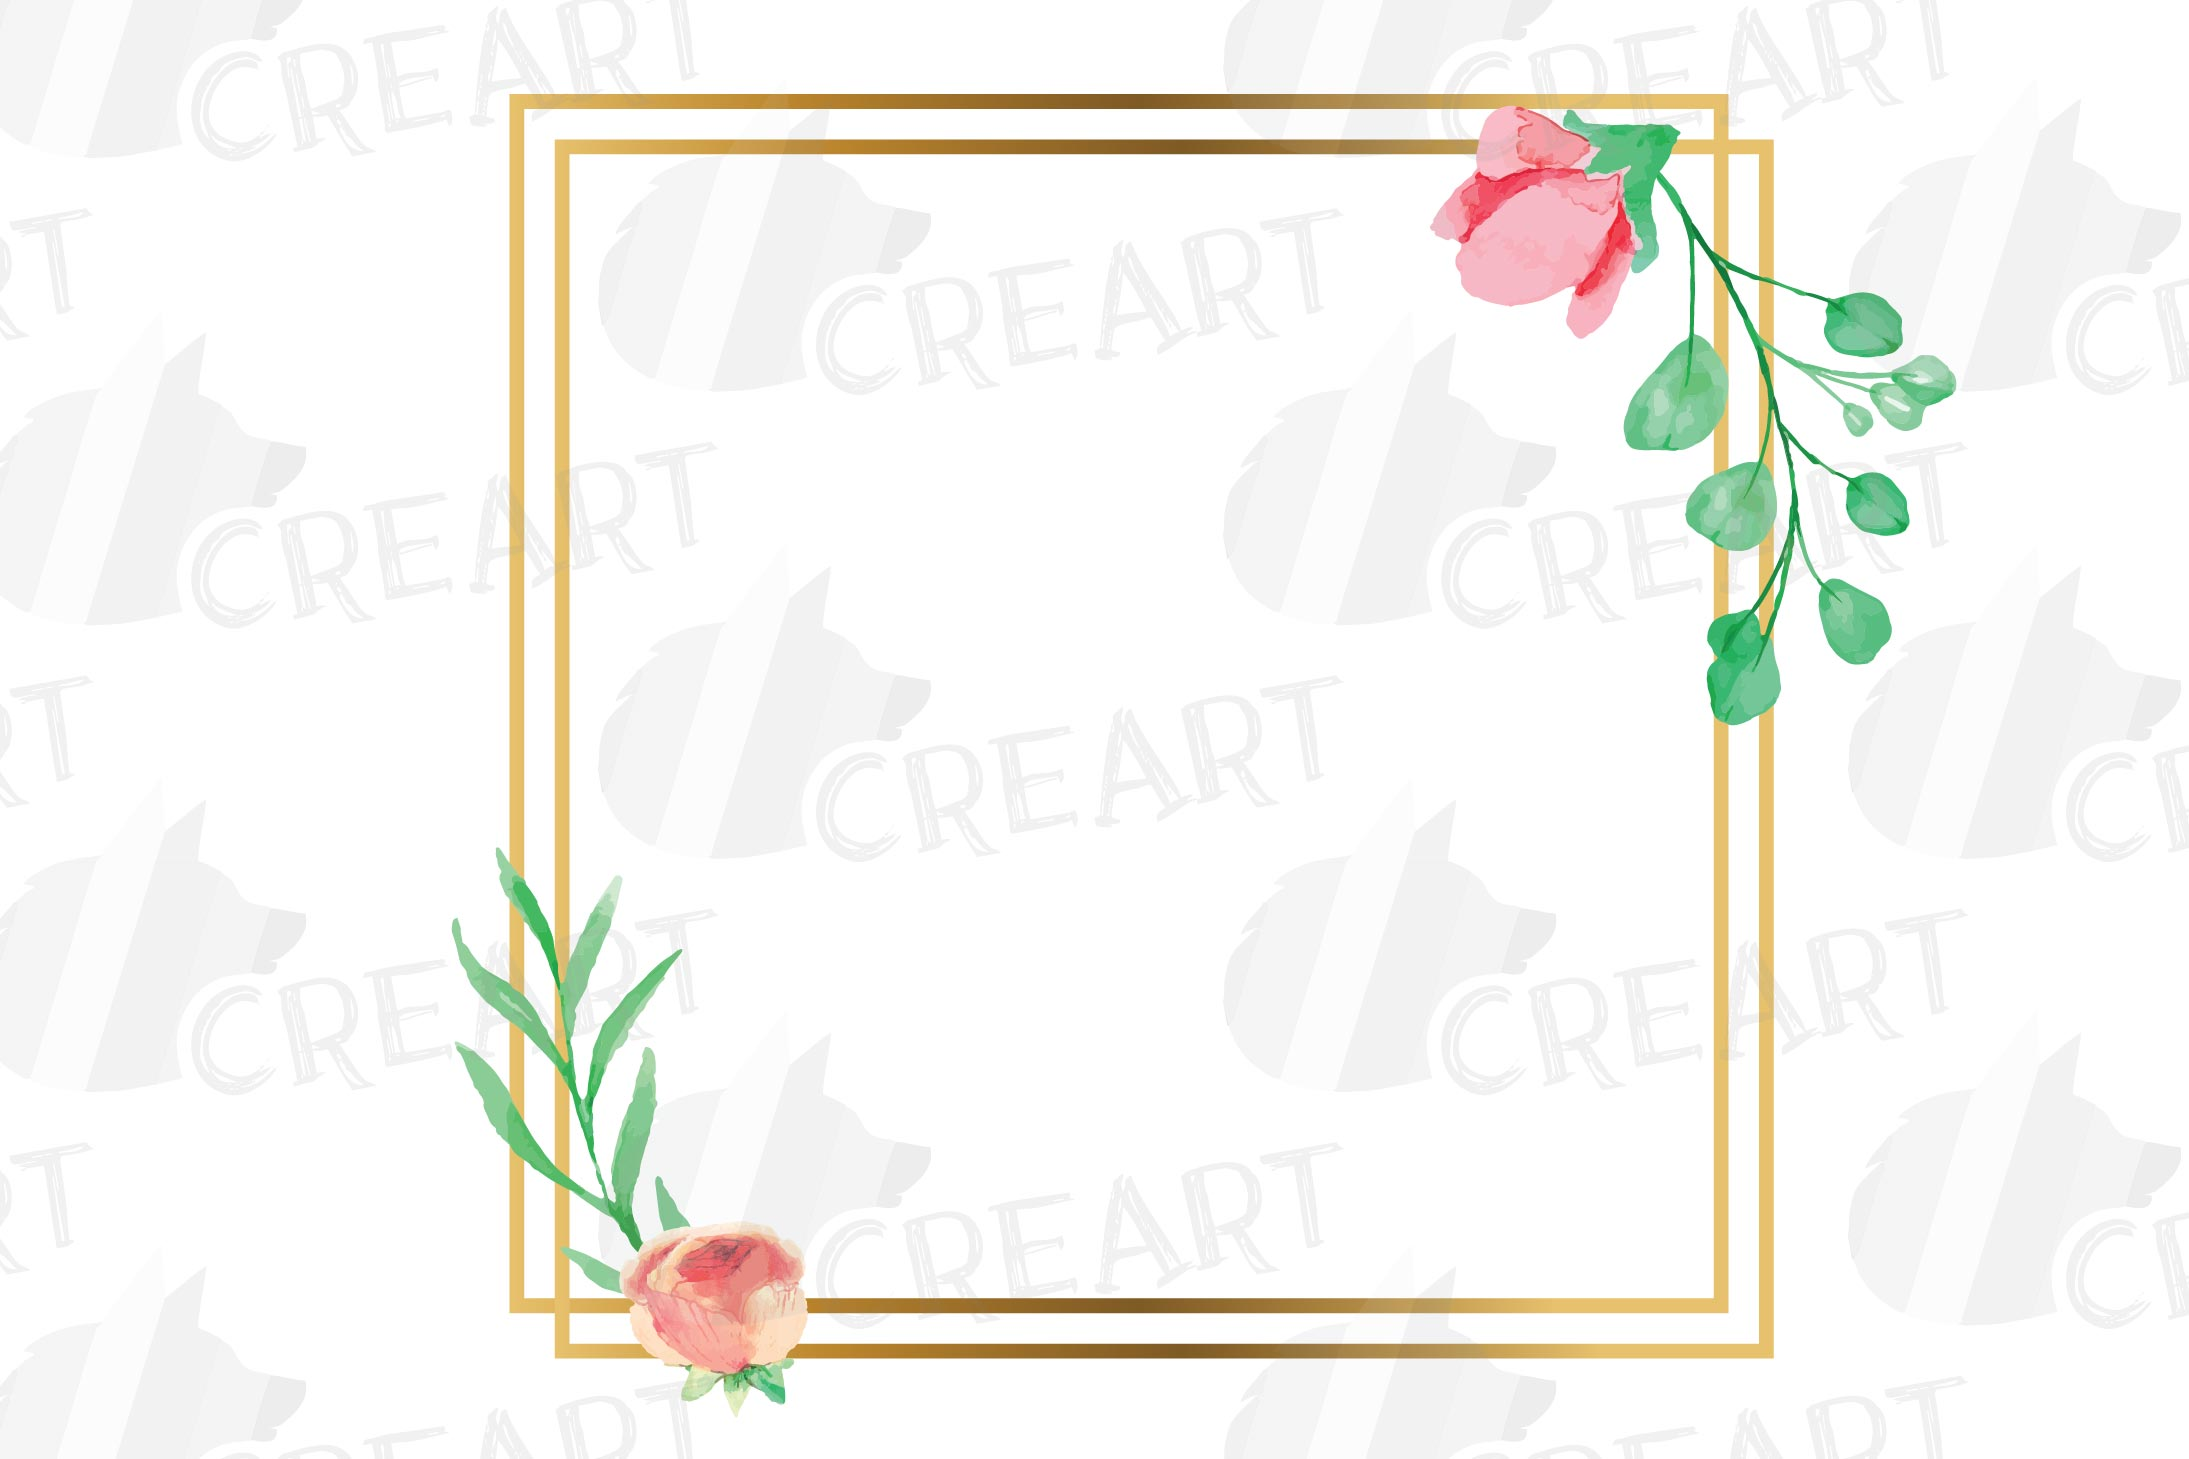 Golden Floral Frames Clip Art. Wedding geometric borders png example image 9